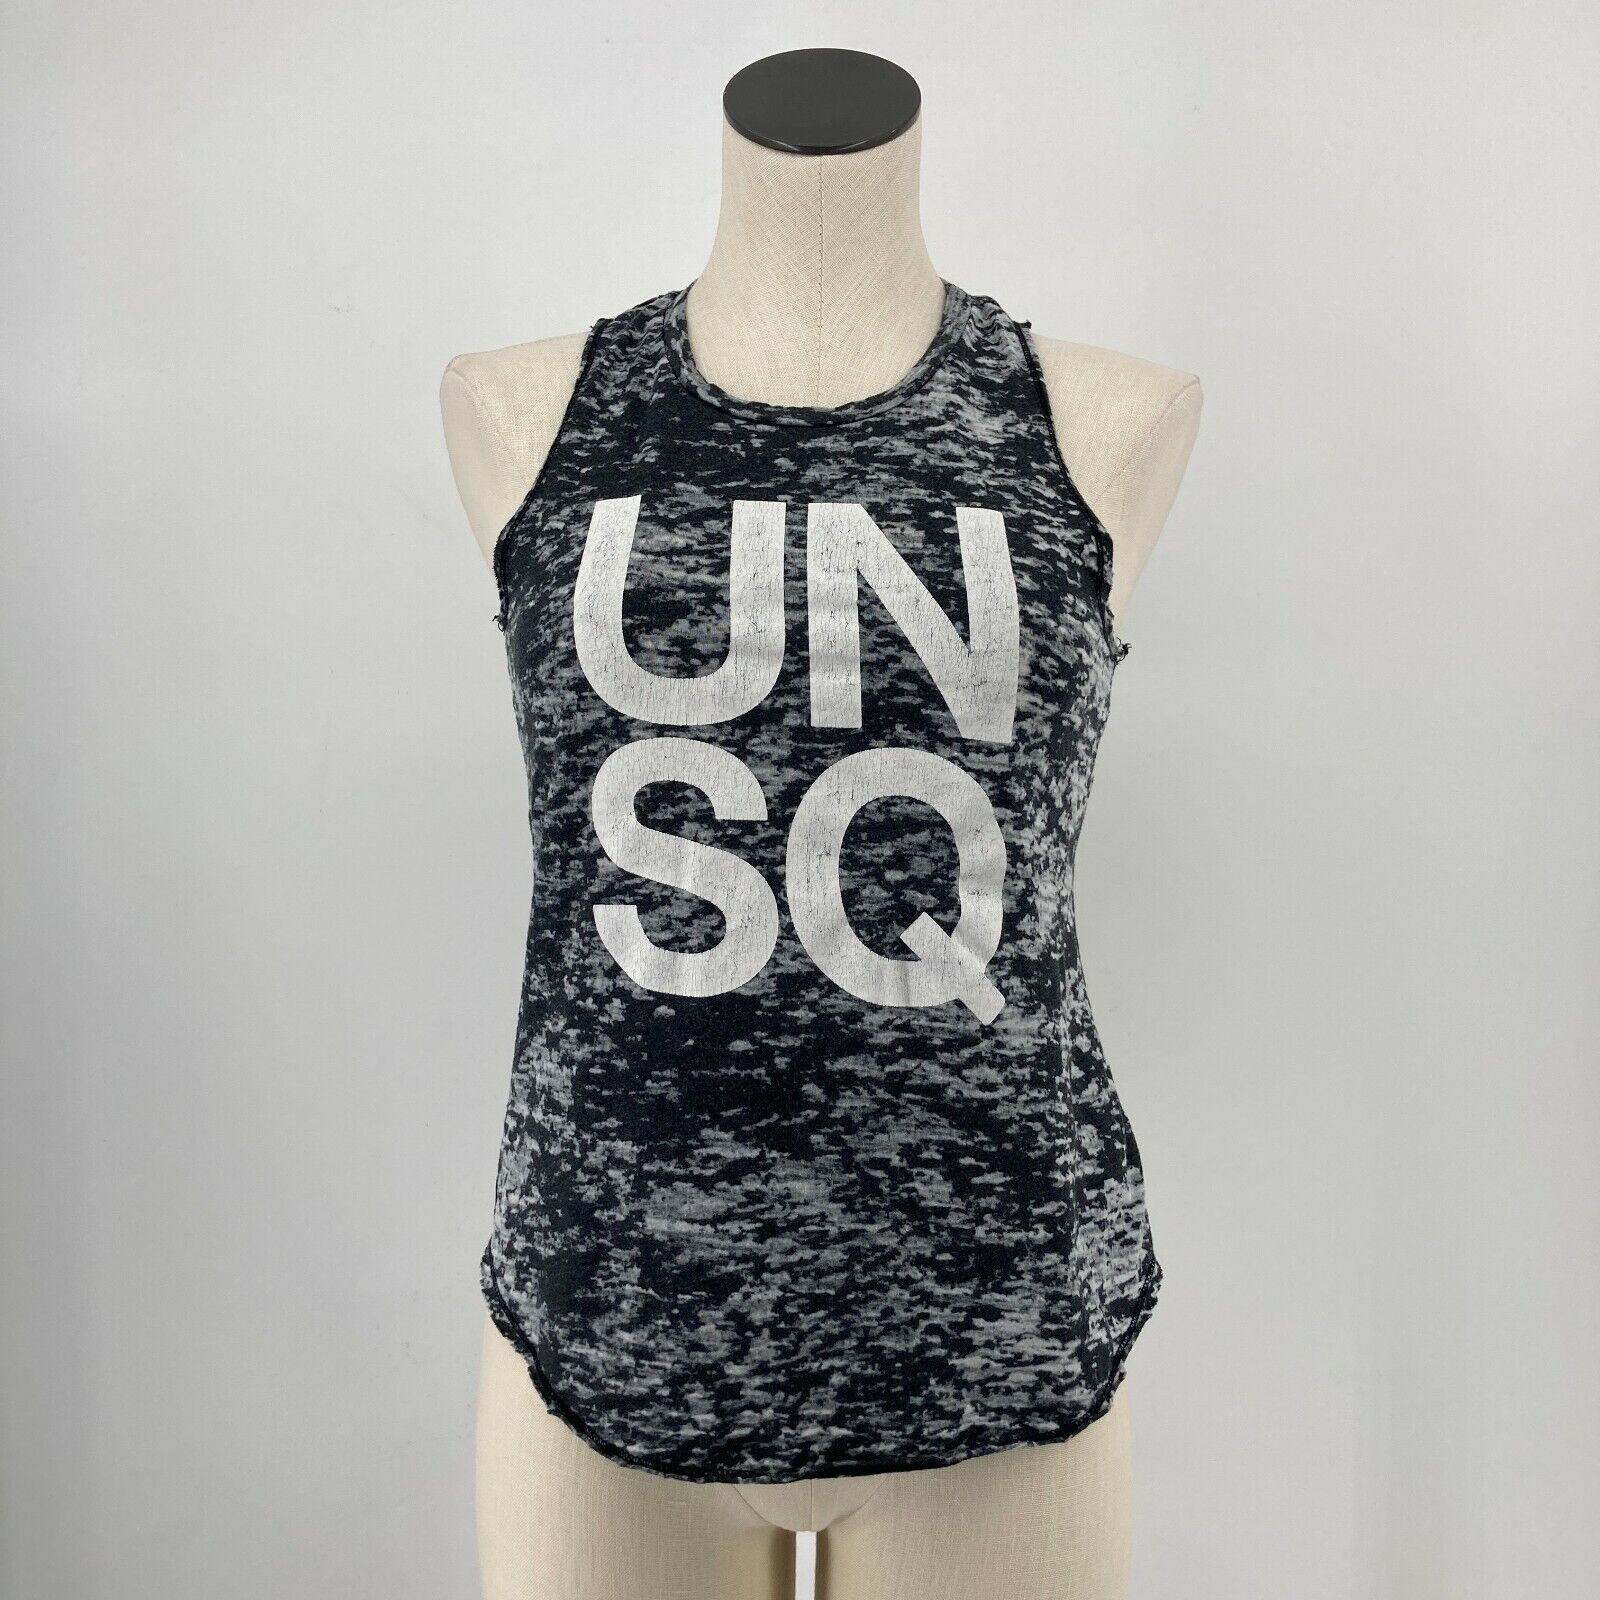 SoulCycle Womens Top Sleeveless Tank UNSQ Distressed Burnout Gray Size Small